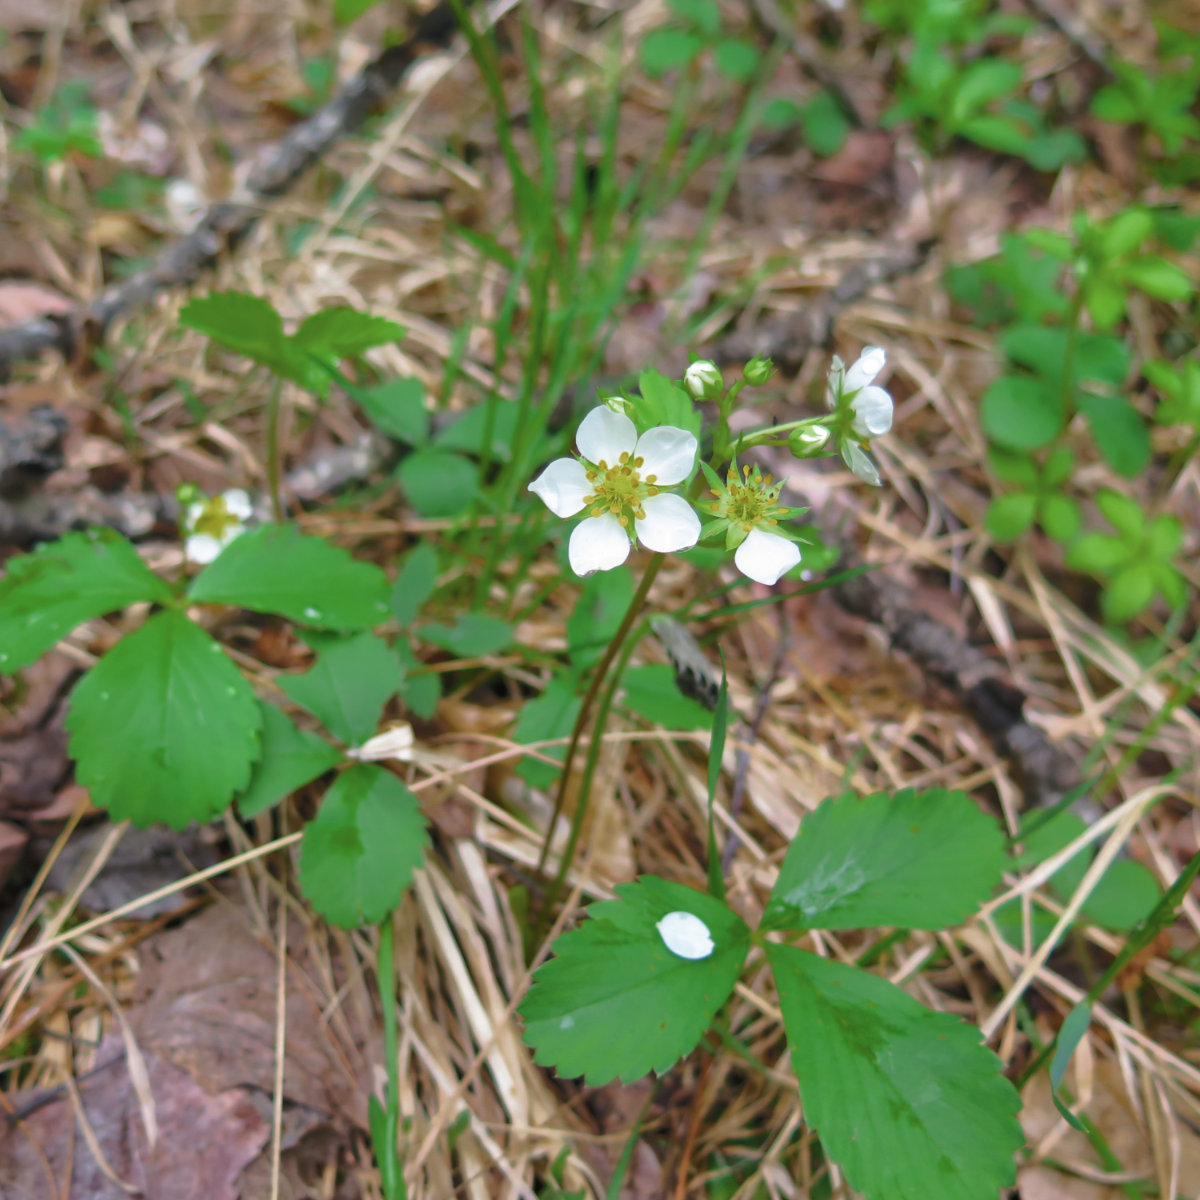 Common Strawberry found at trailside on Sandwich Mountain, White Mountain National Forest, New Hampshire.